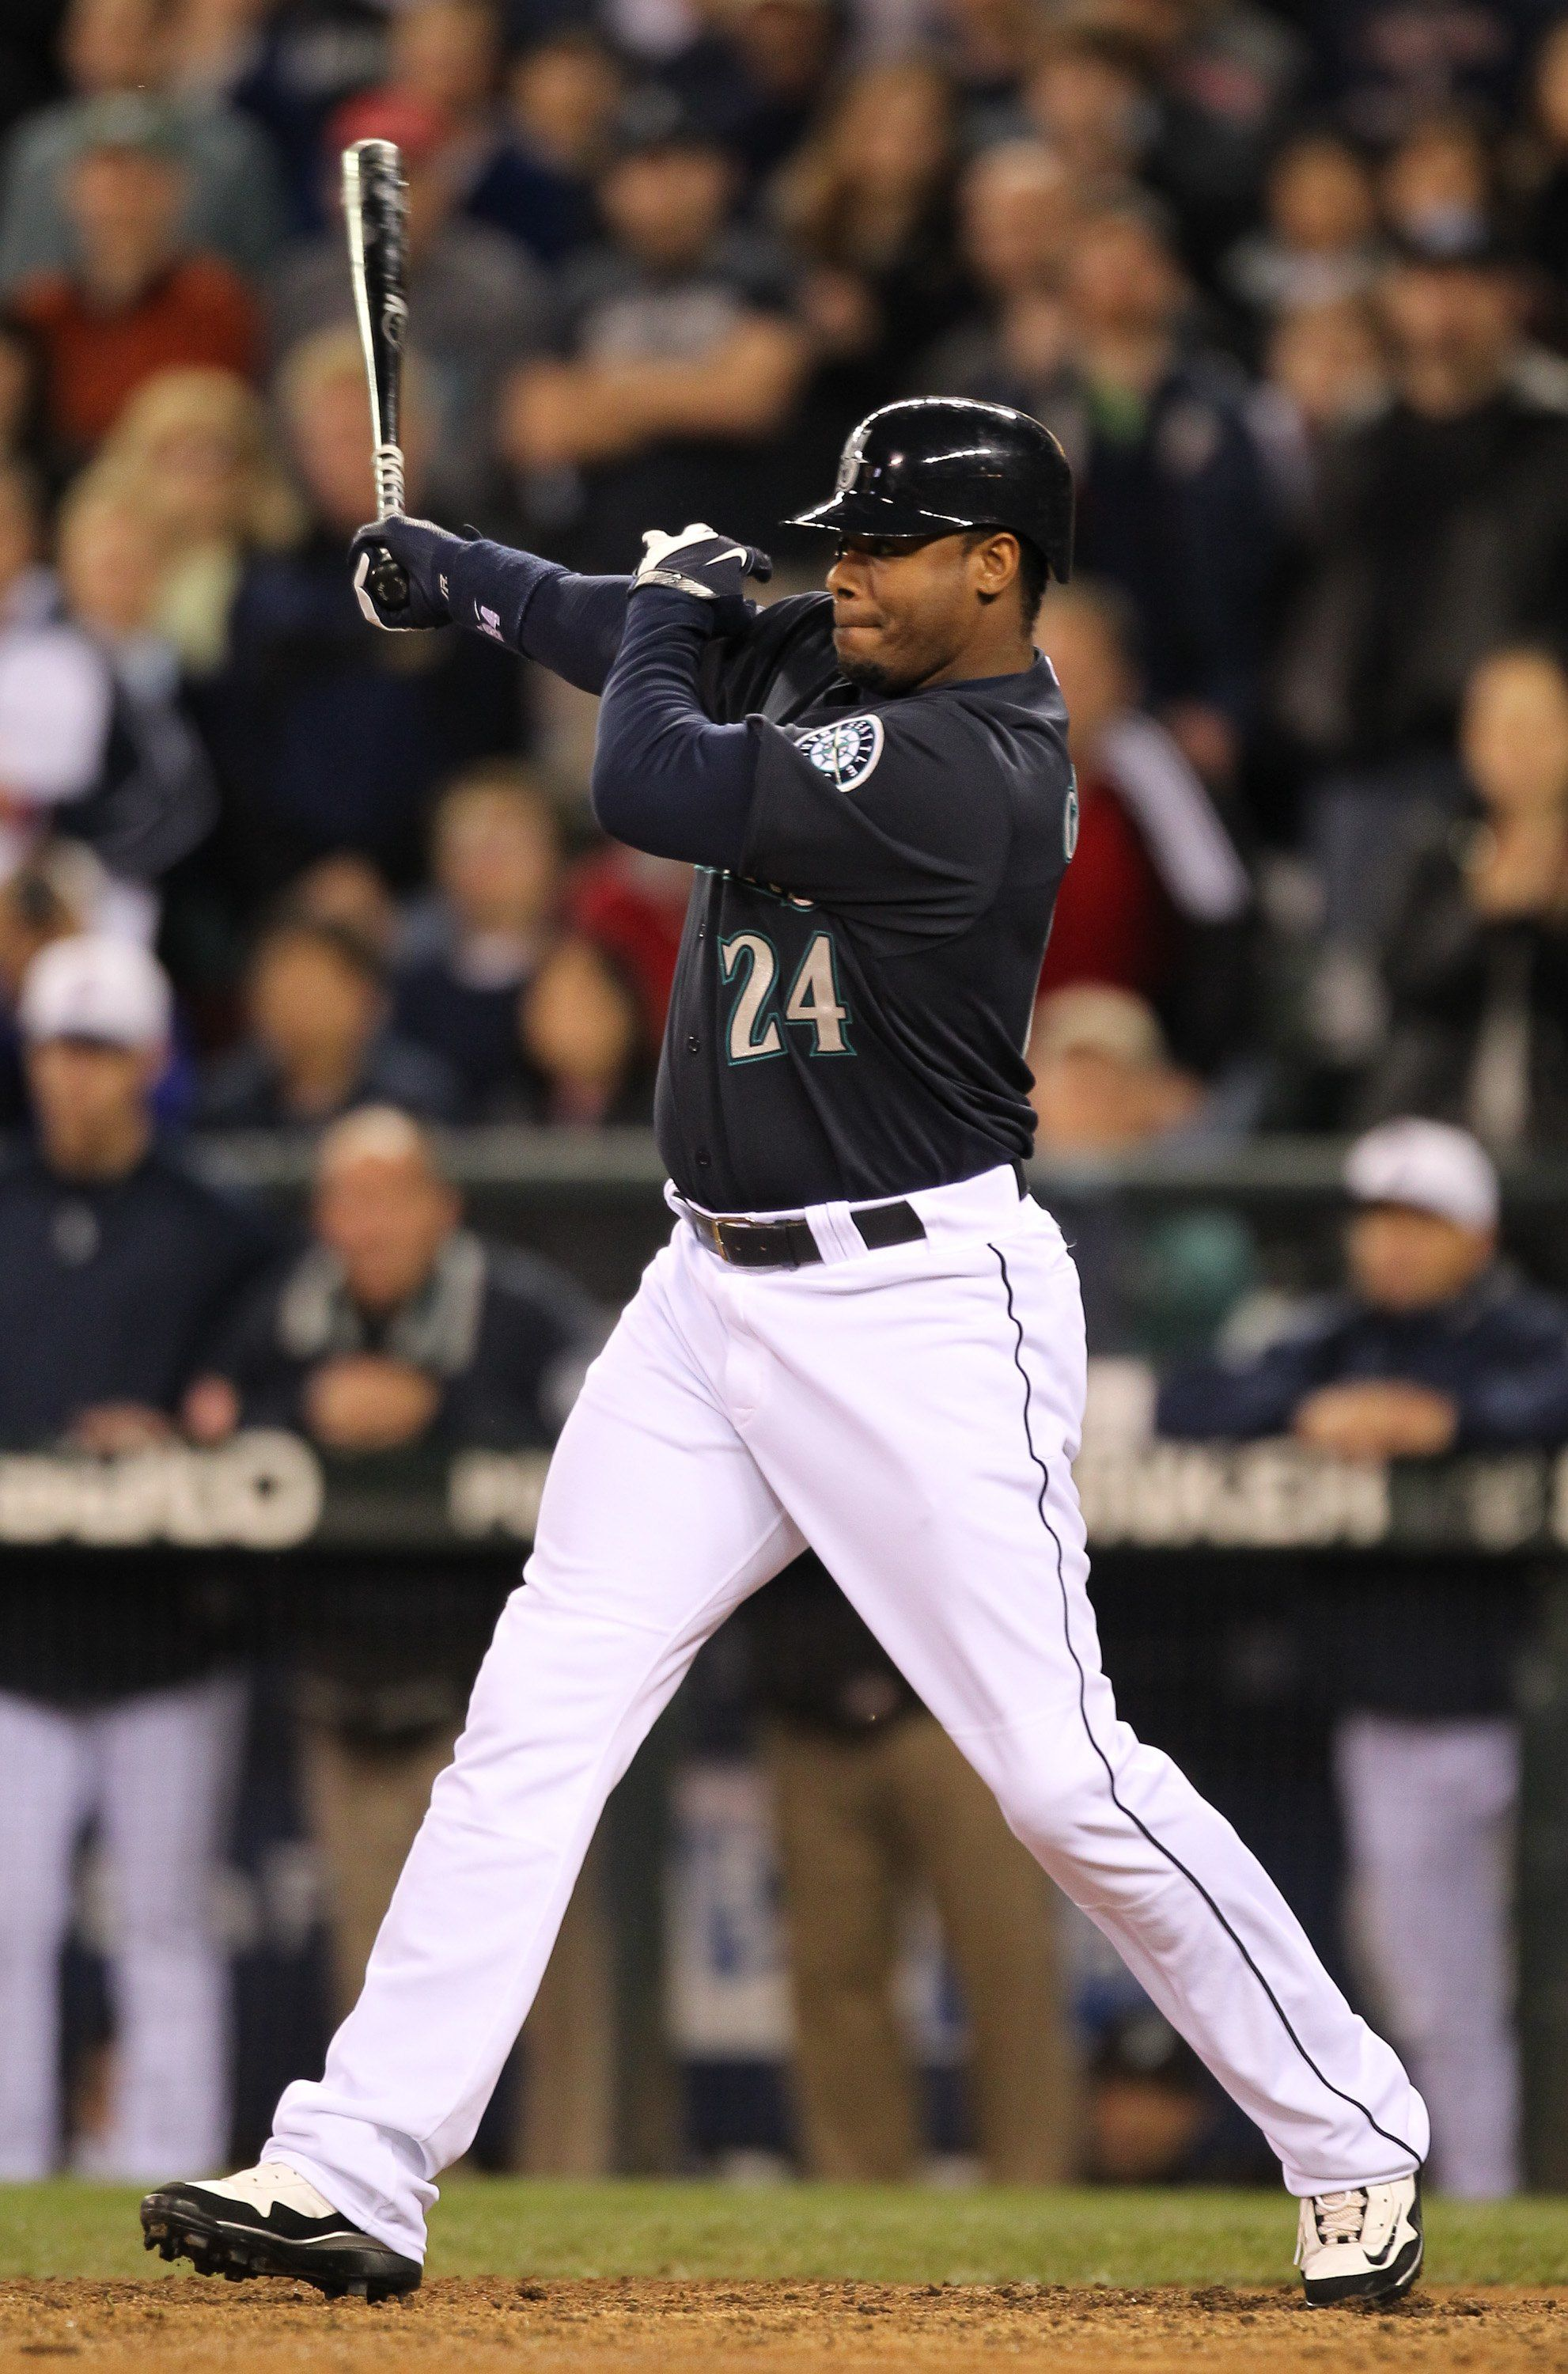 c7c56fa138 Ken Griffey Jr. he has the Best Swing Ever and my favorite baseball player  ever.